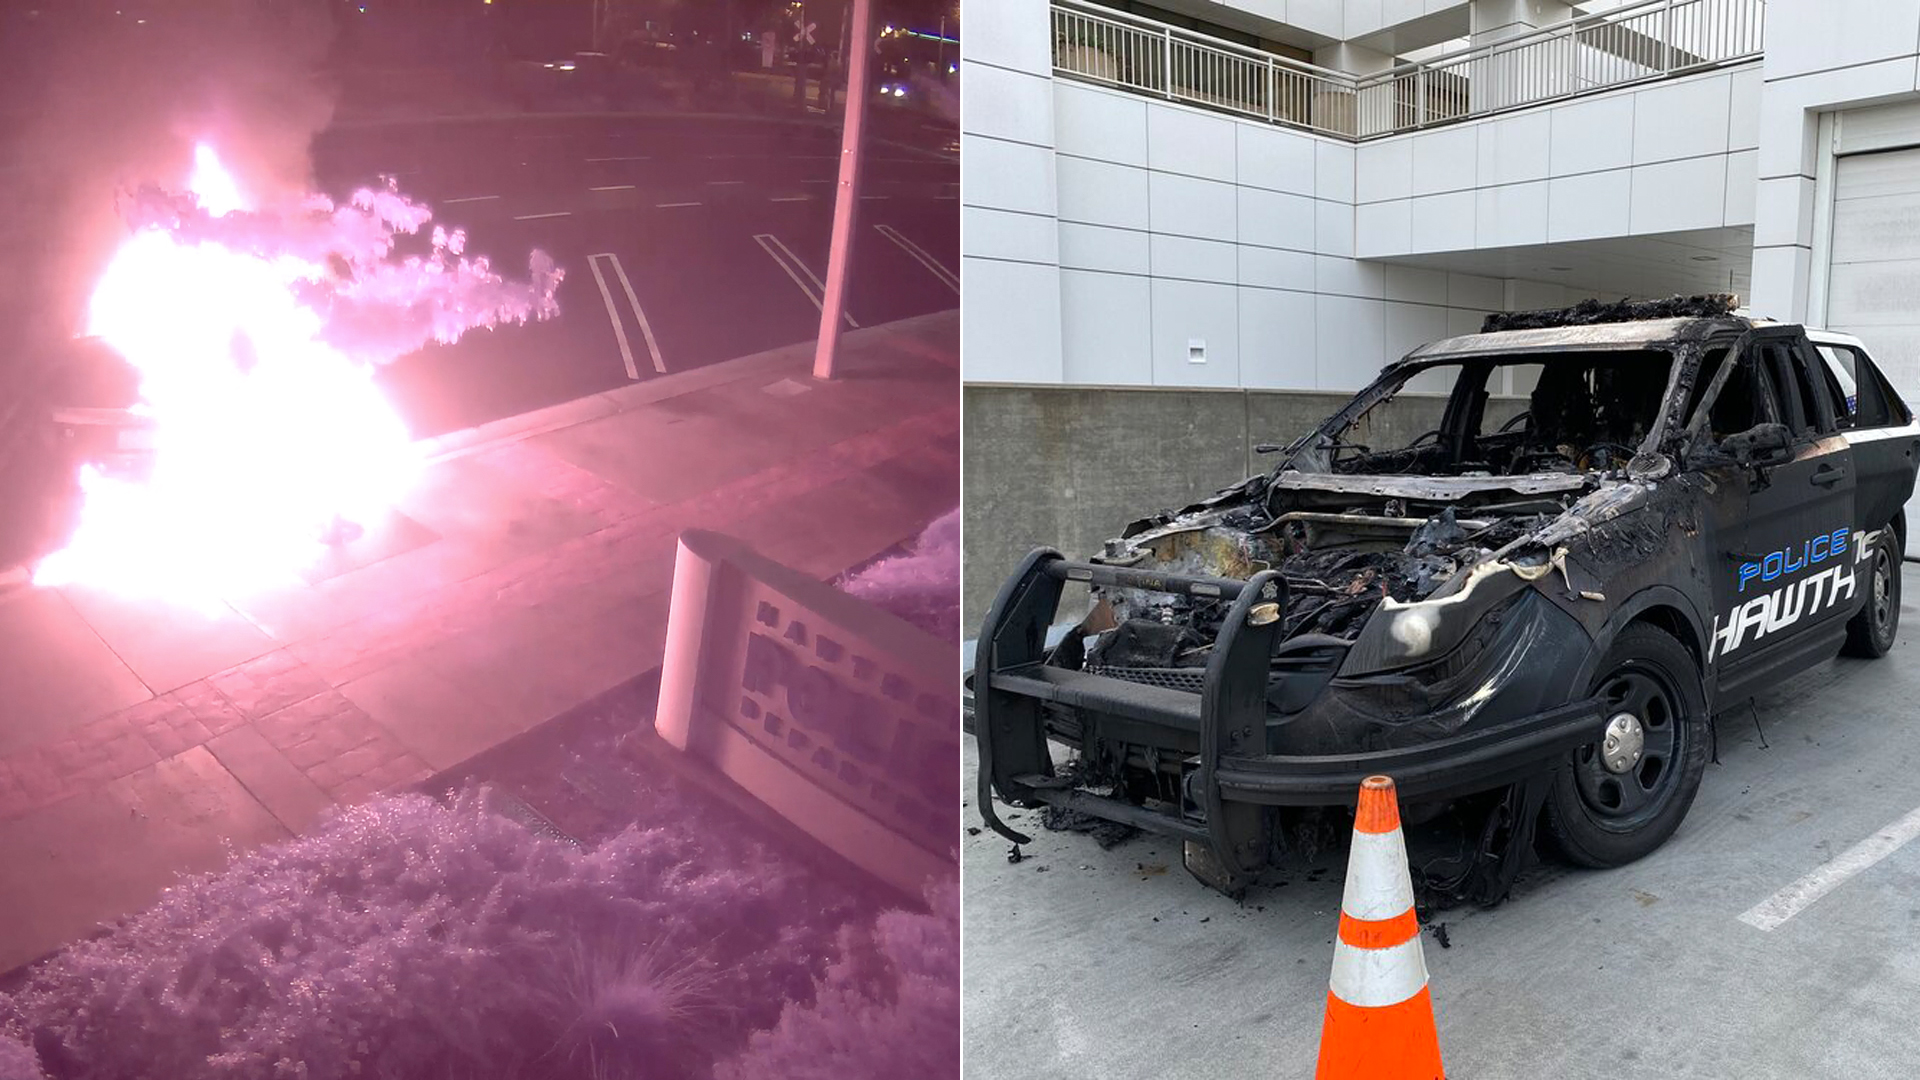 Hawthorne police released a video and a photo of a patrol SUV that was destroyed after a person set it on fire on Dec. 5, 2019.